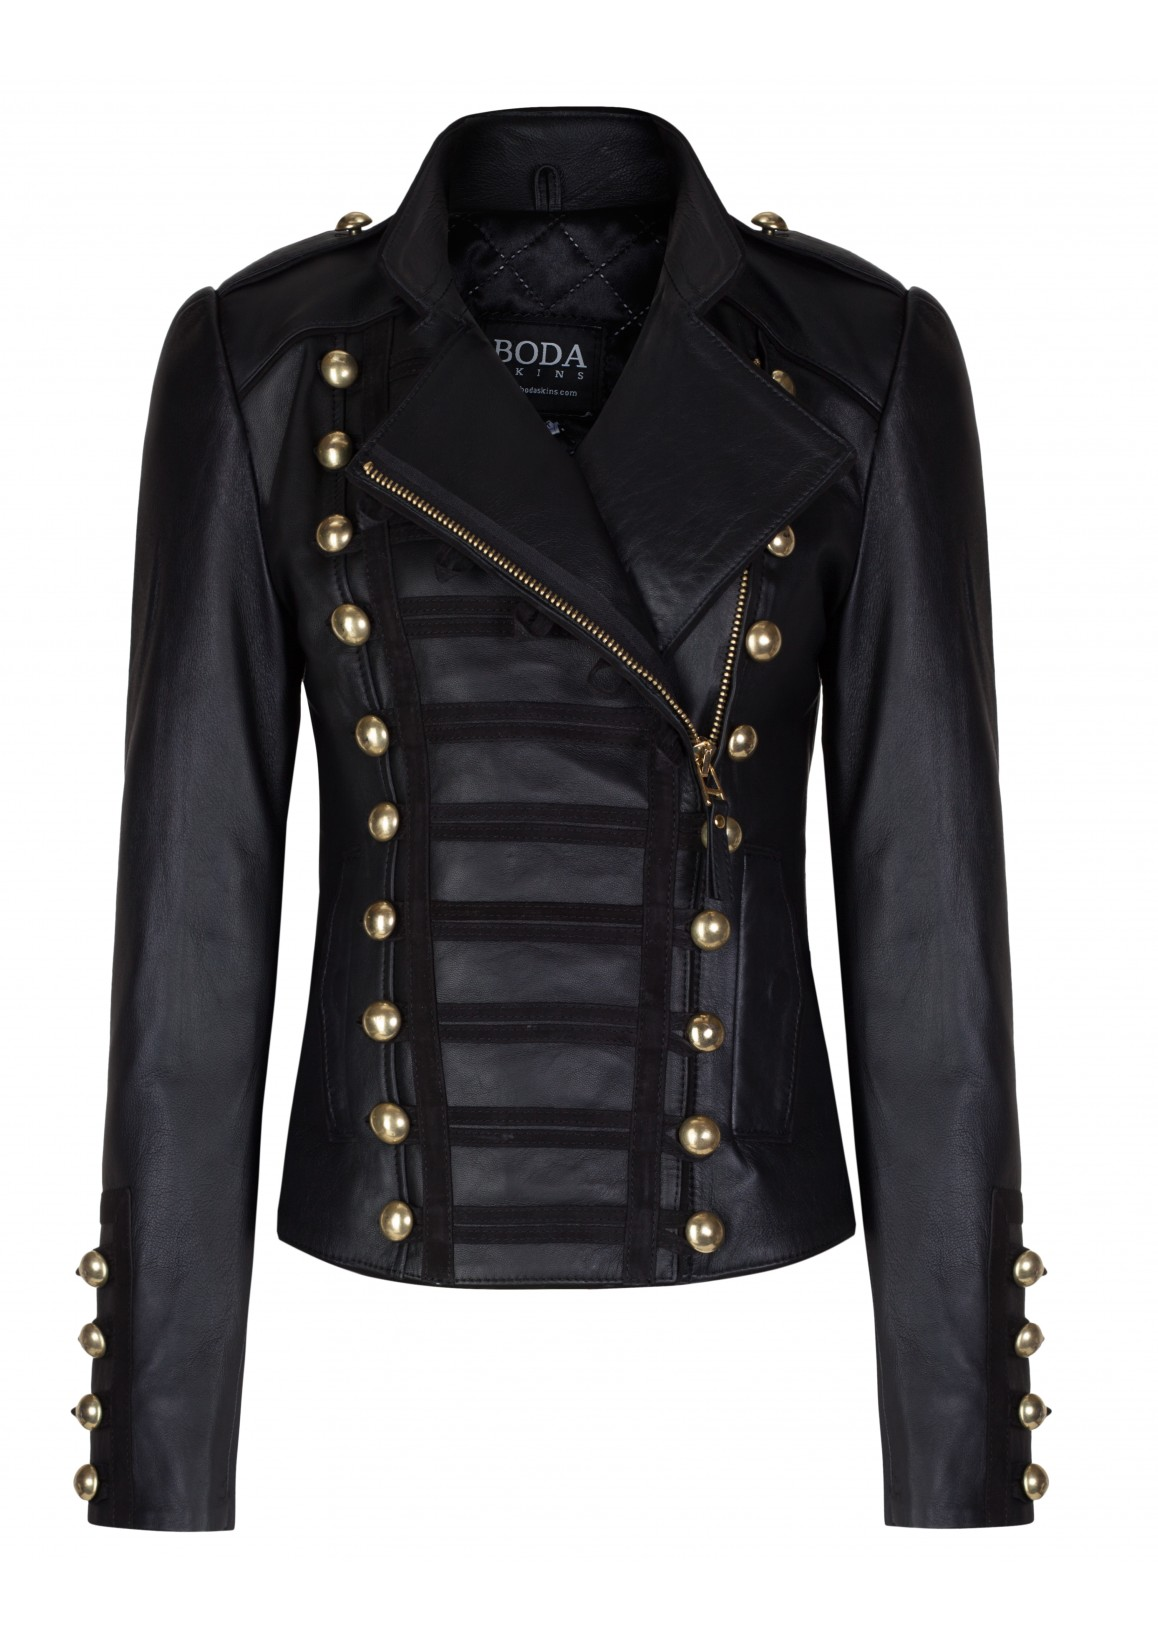 Oil Black Gold Hardware Womens Leather Military Jacket - Boda Skins